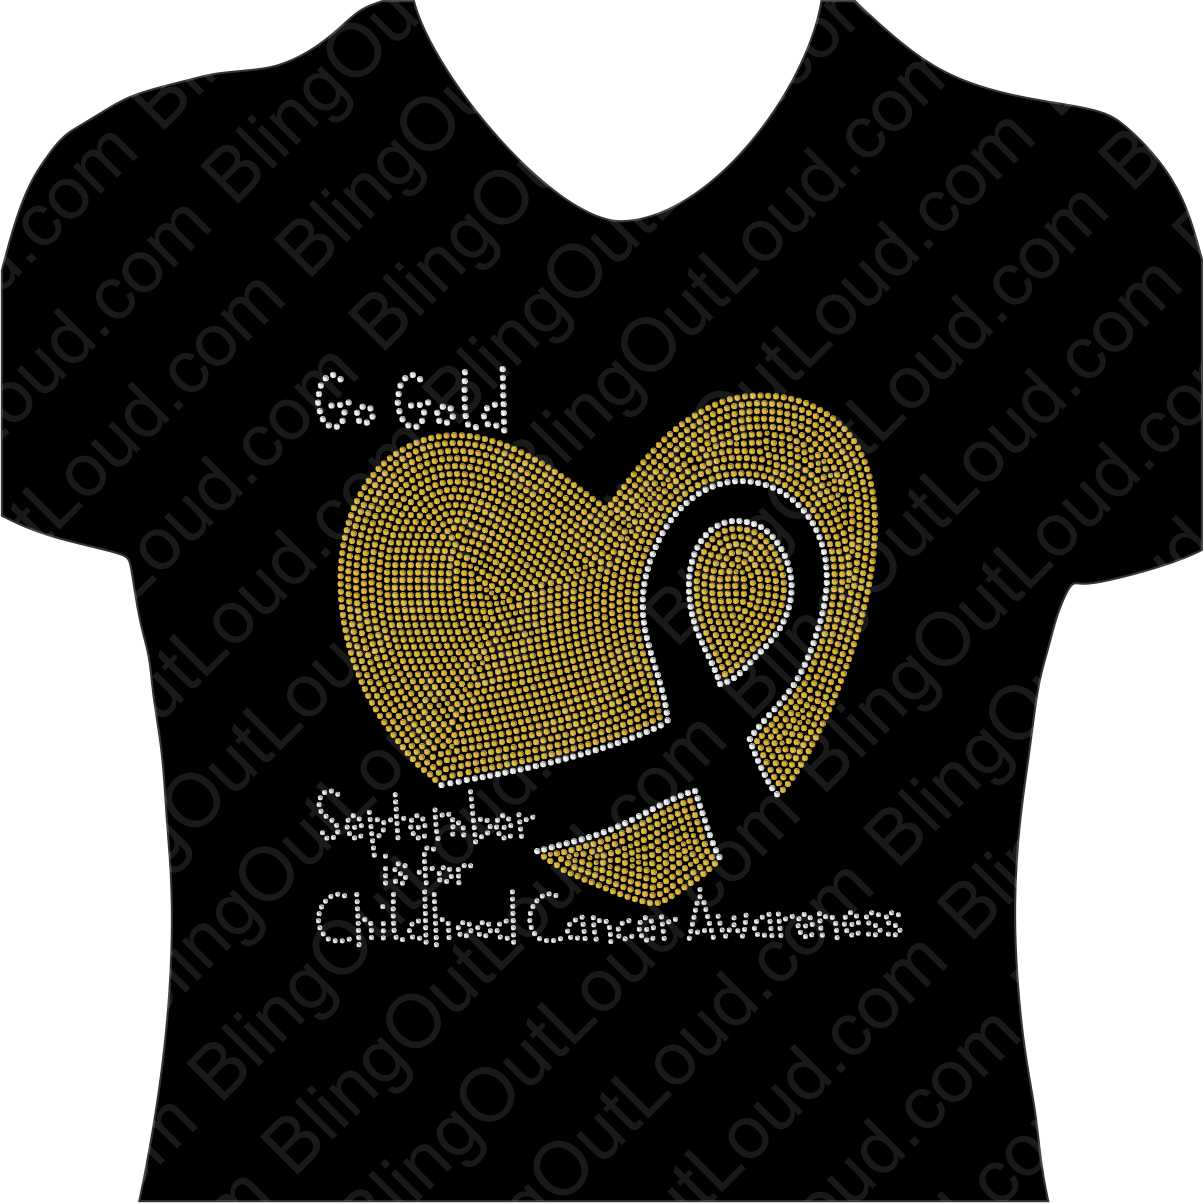 Go Gold in September for Childhood Cancer Awareness